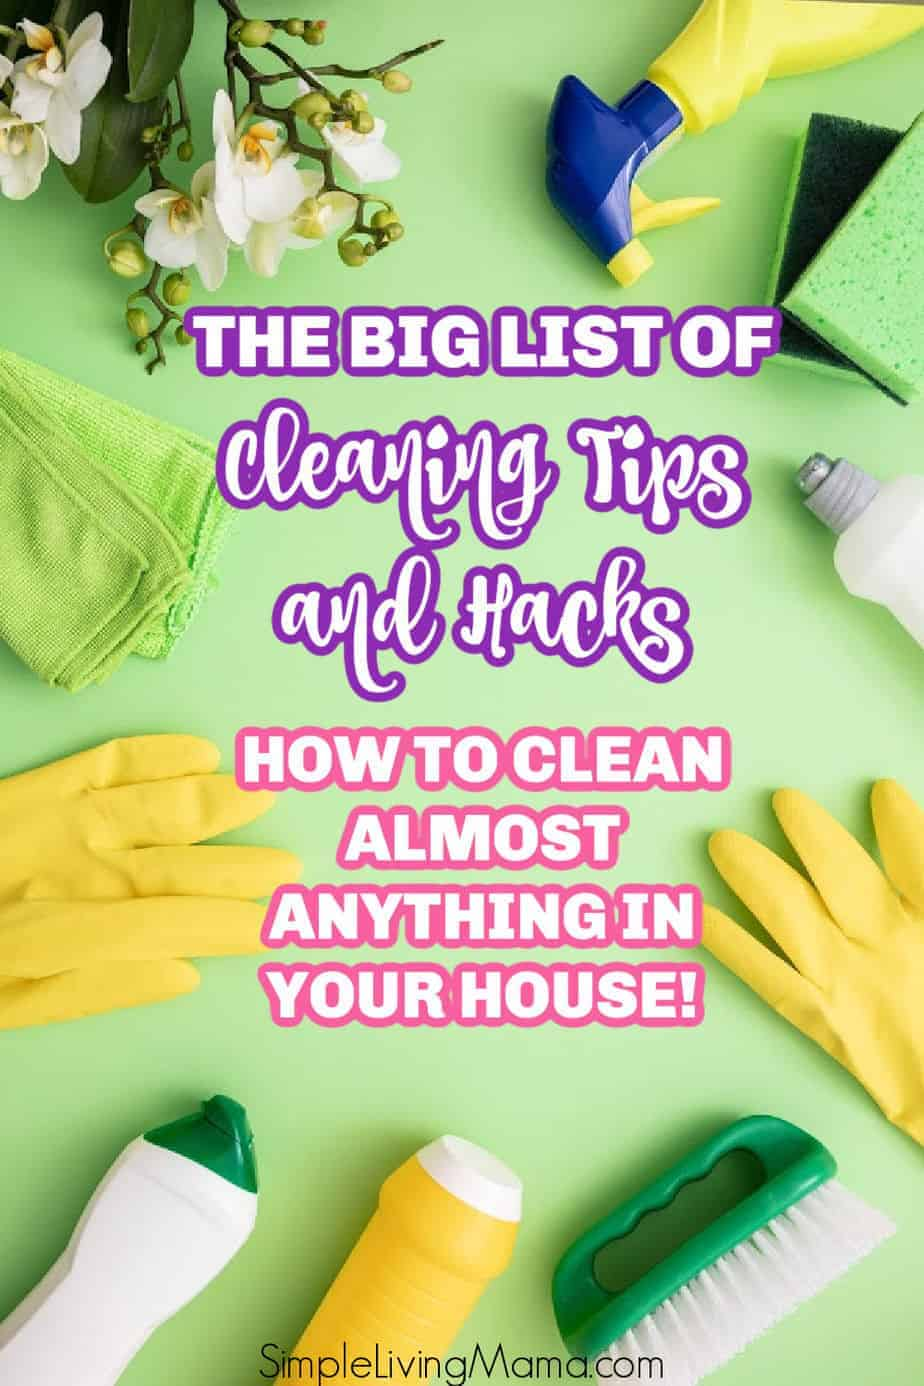 The big list of cleaning tips and hacks!